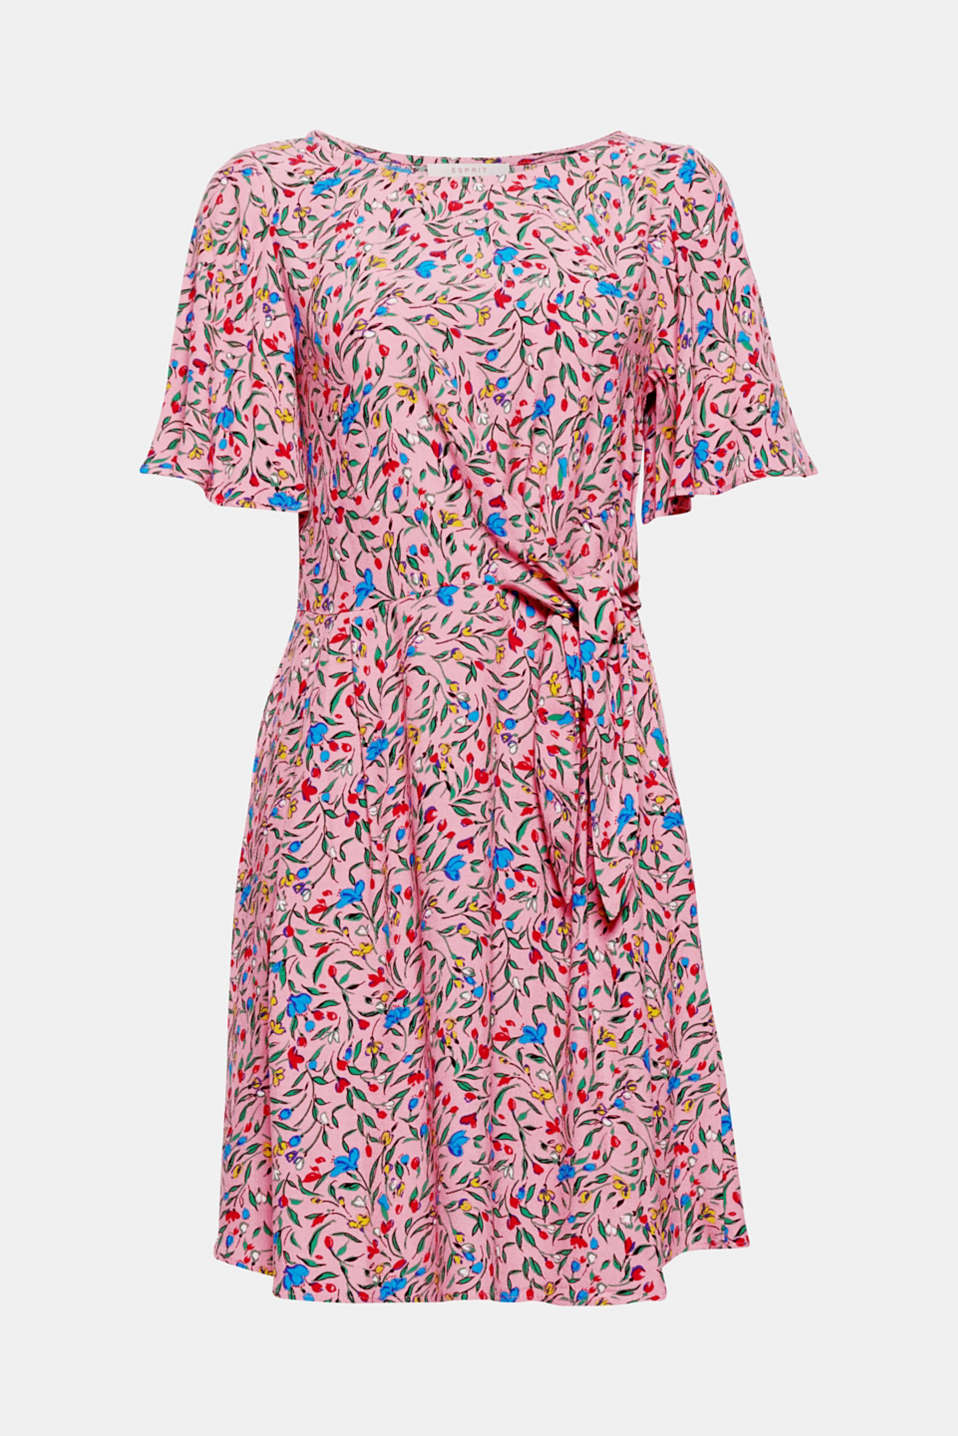 Sweet summer day - in this airy, lightweight dress with a colourful floral print, fashionable cap sleeves and knot detail at the side of the waist!